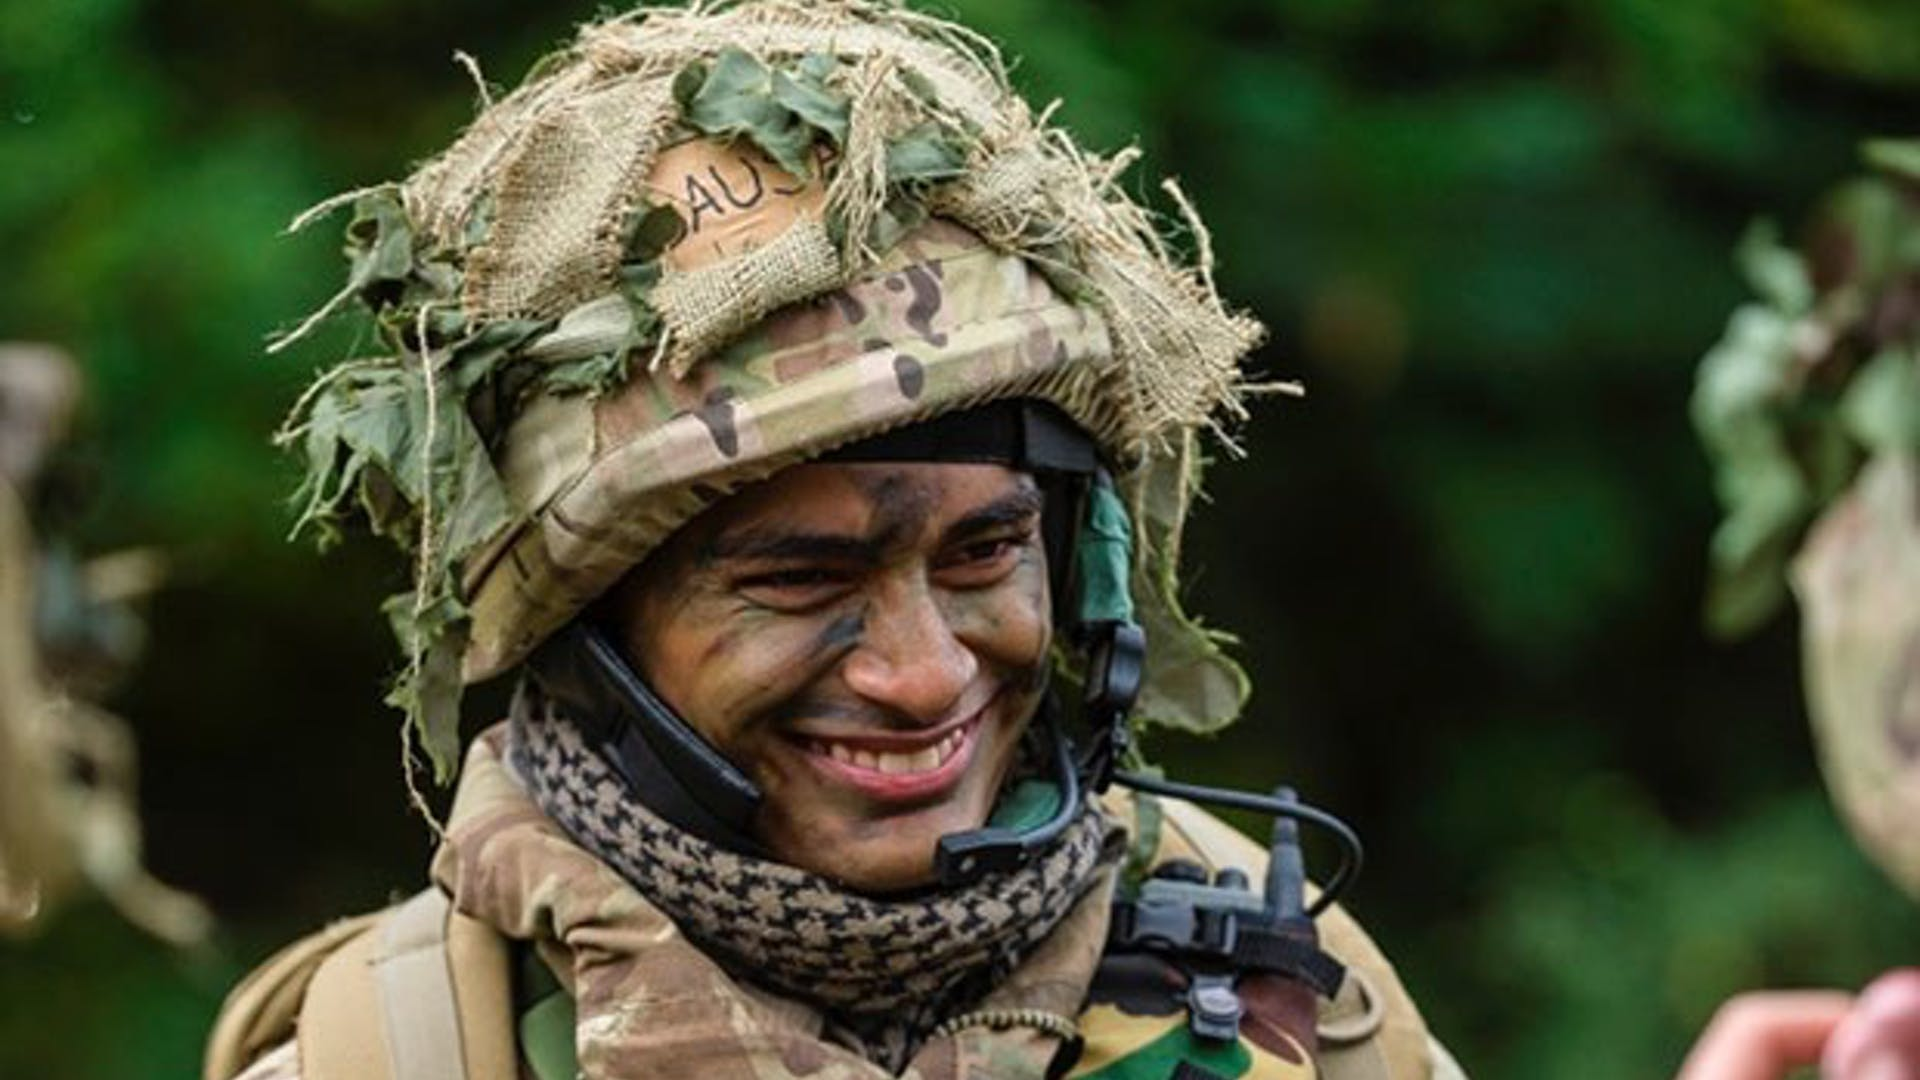 Smiling soldier